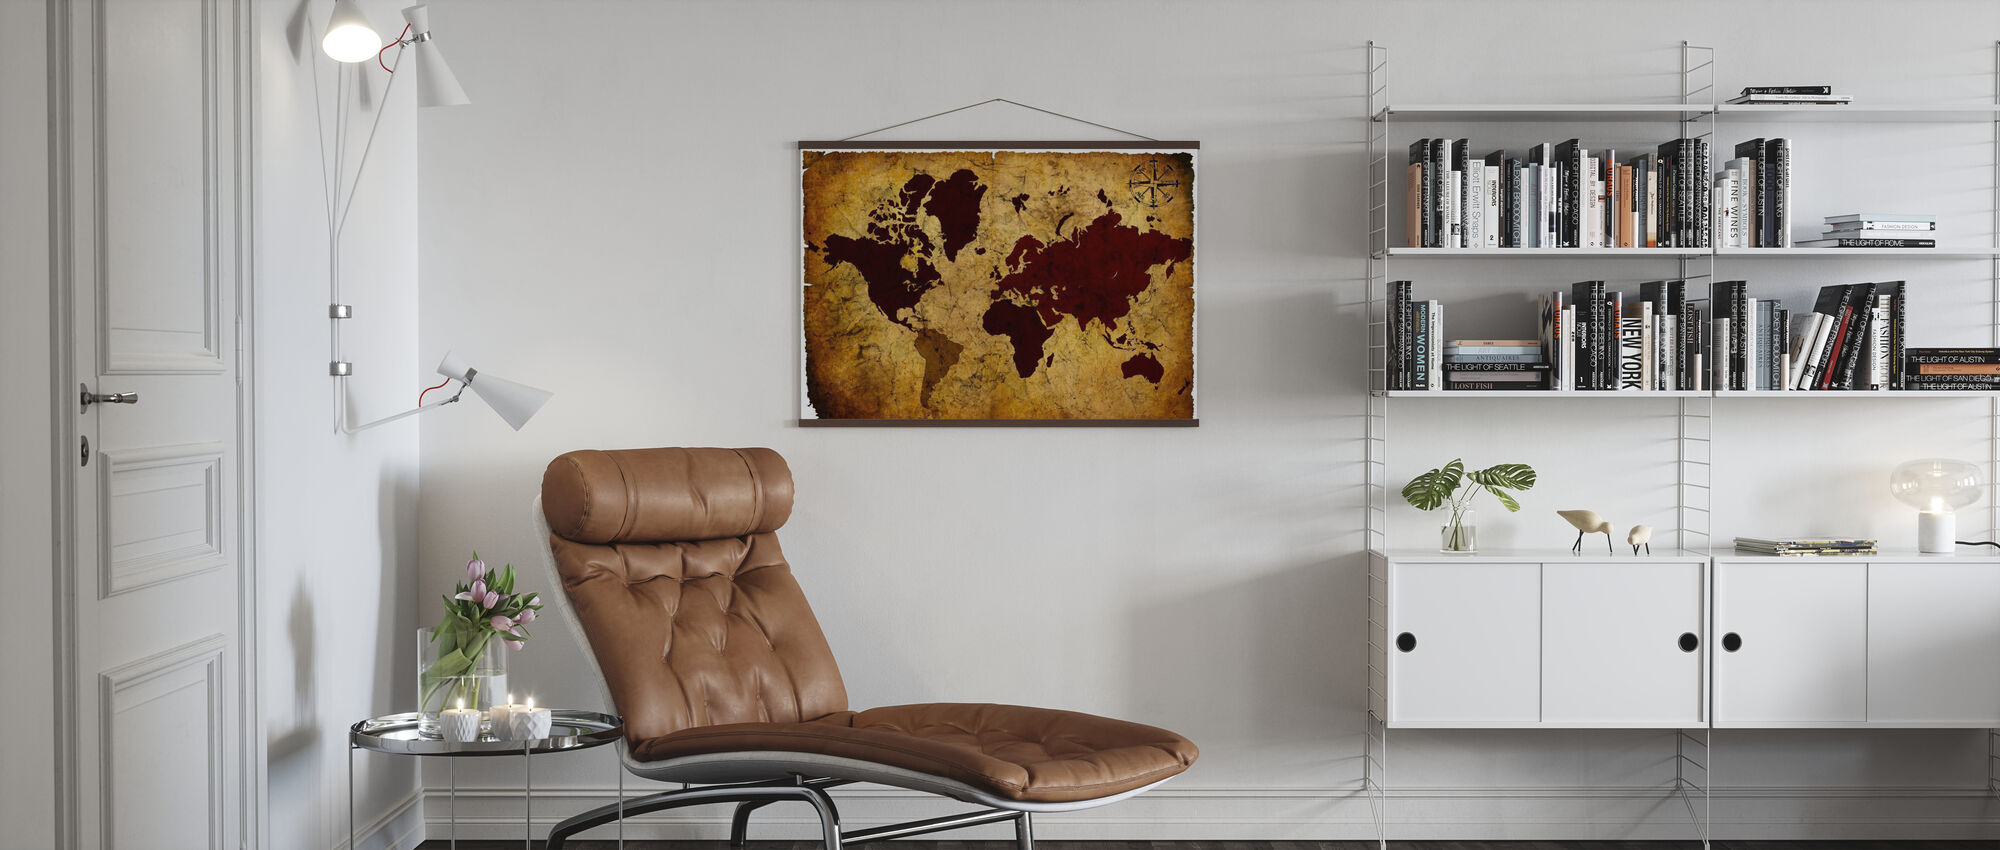 Old Manuscript of World Map - Poster - Living Room